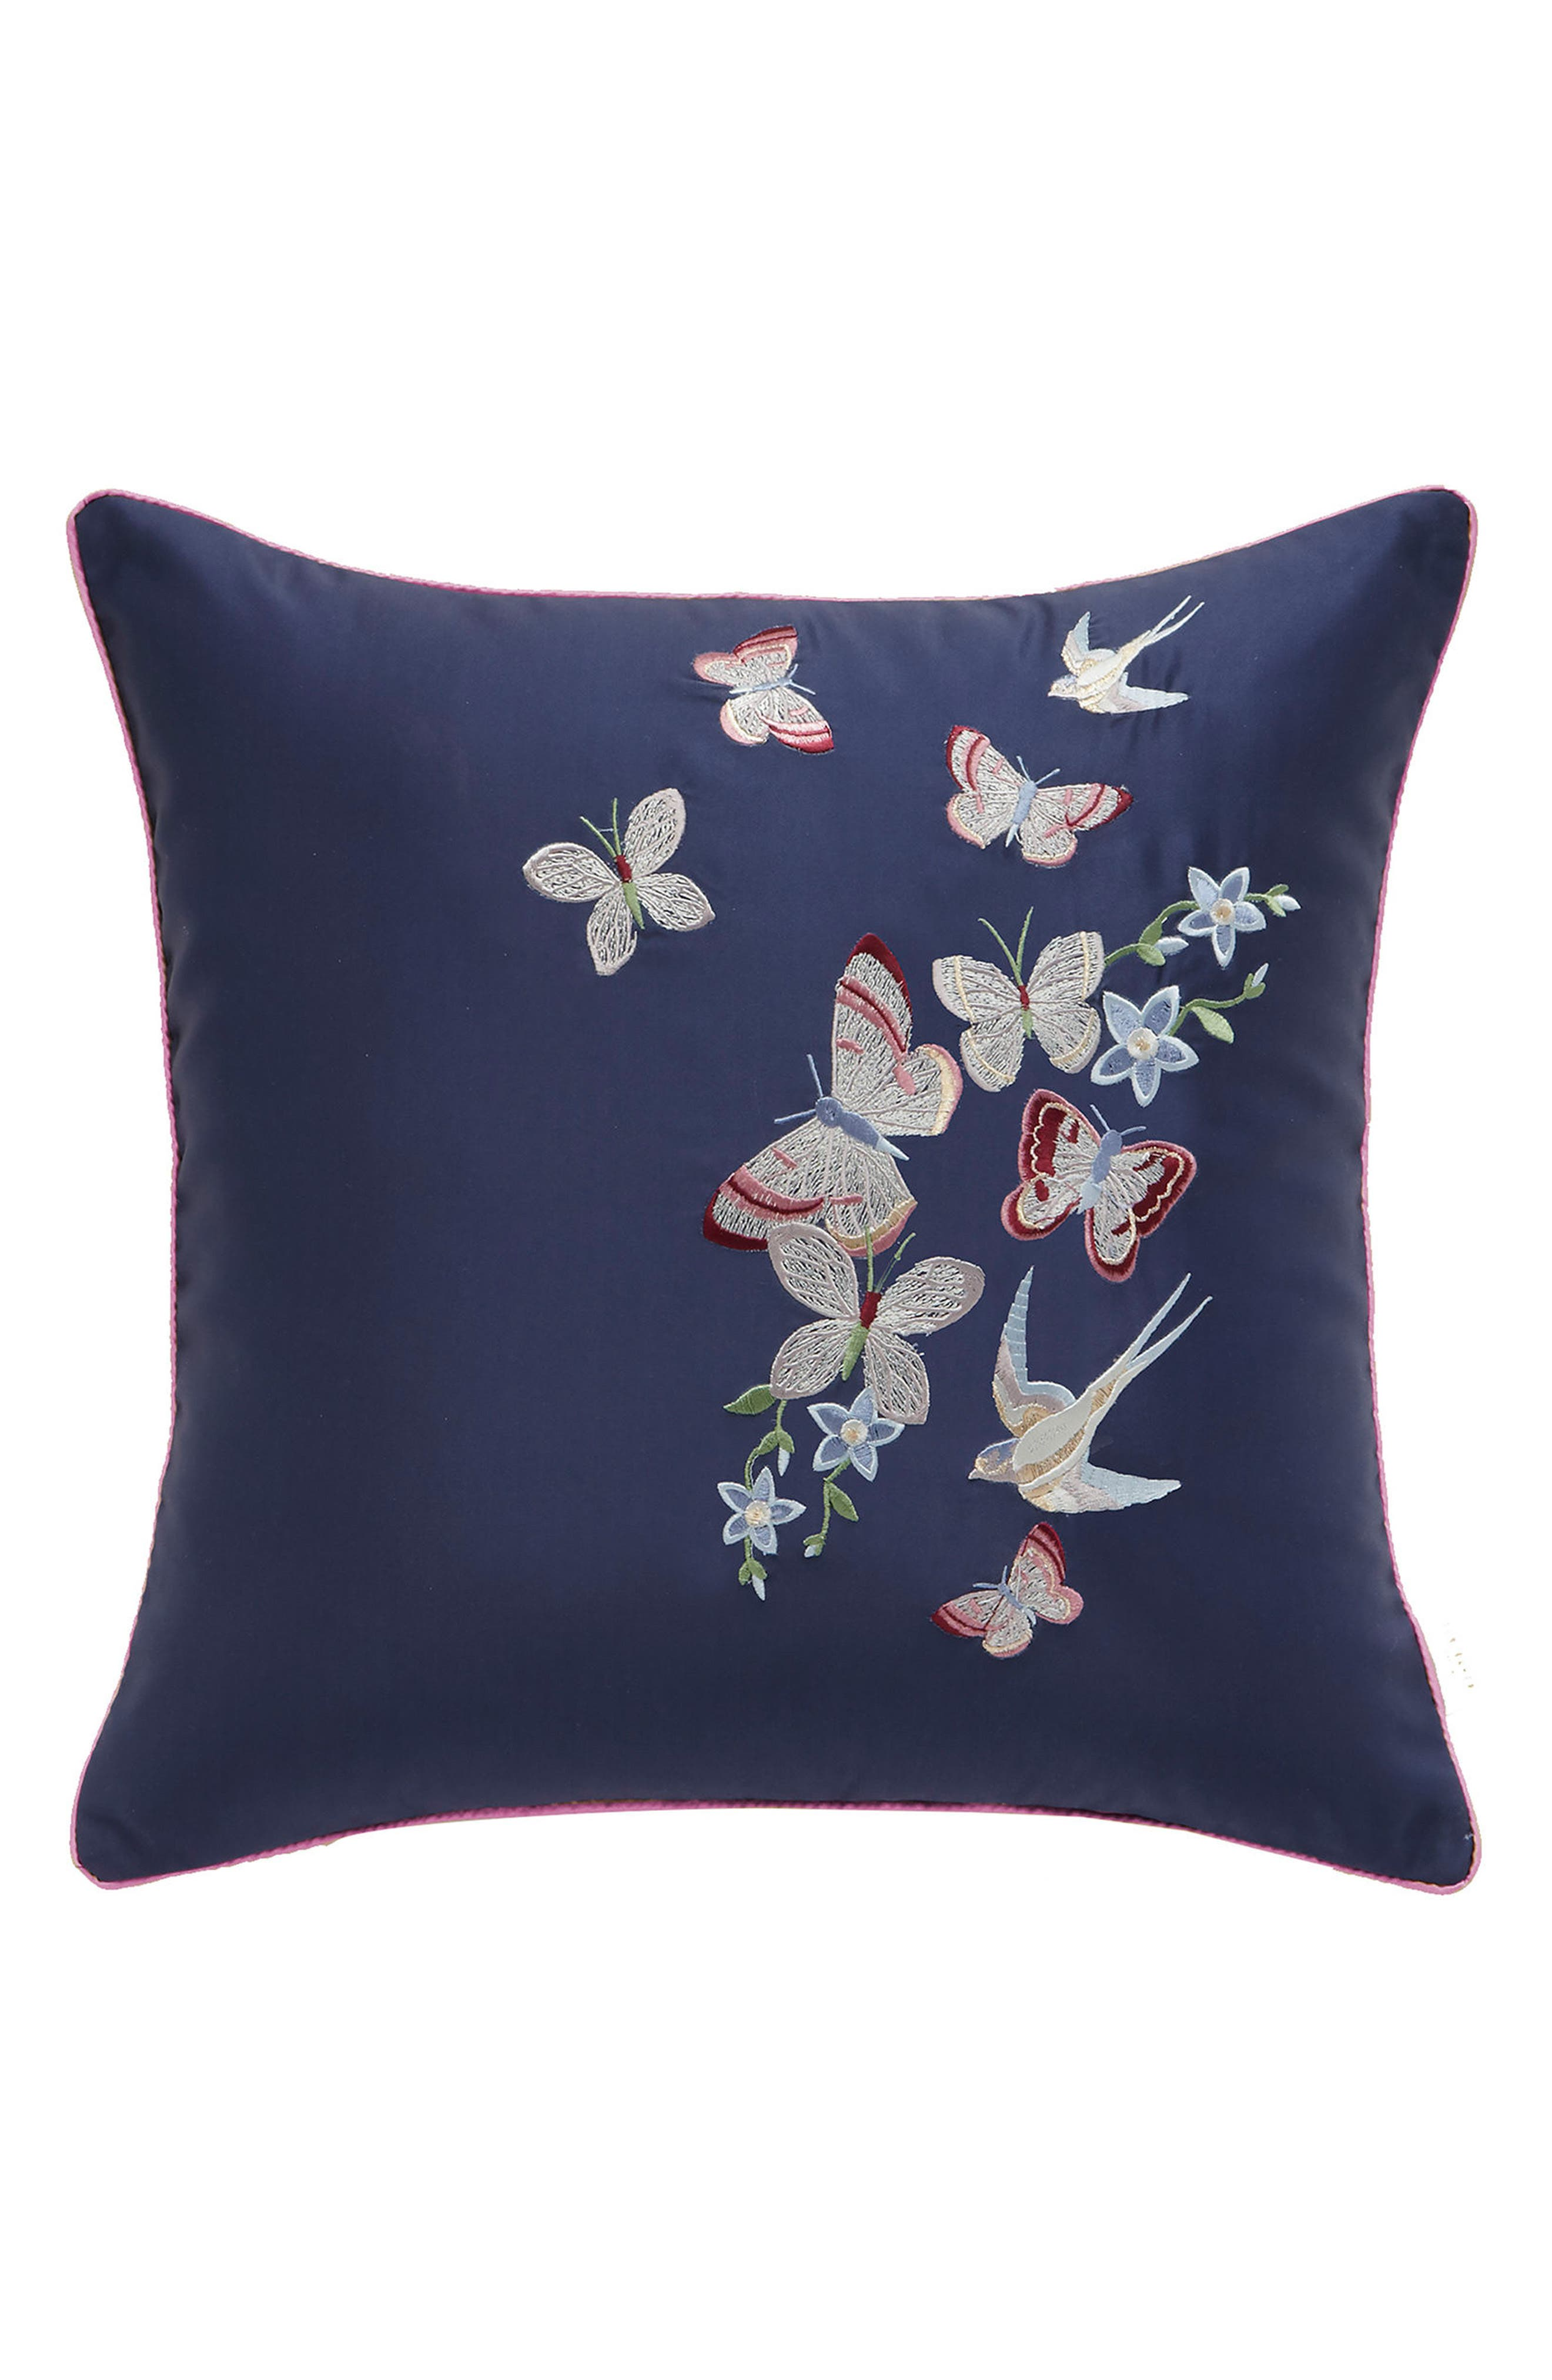 Butterfly Embroidered Accent Pillow,                         Main,                         color, NAVY